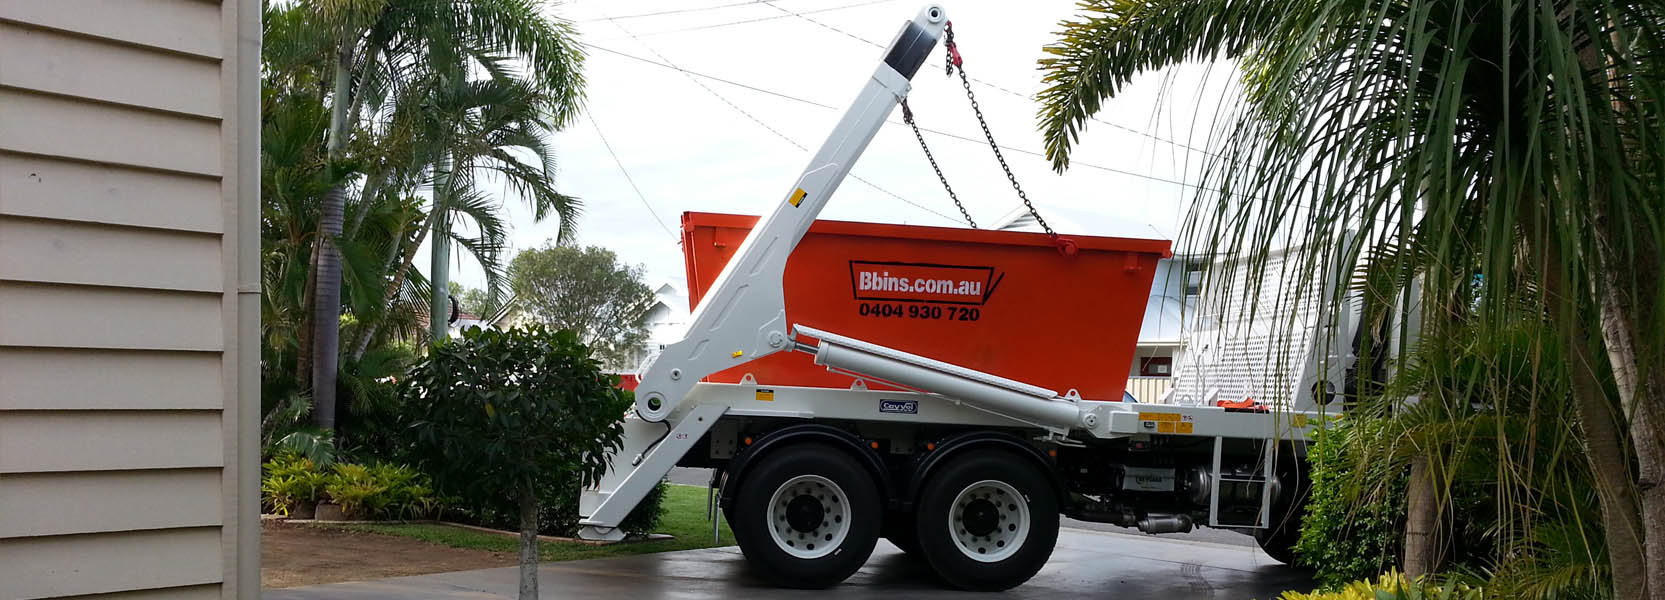 Affordable and Quality Skip Bin for Hire in Brisbane